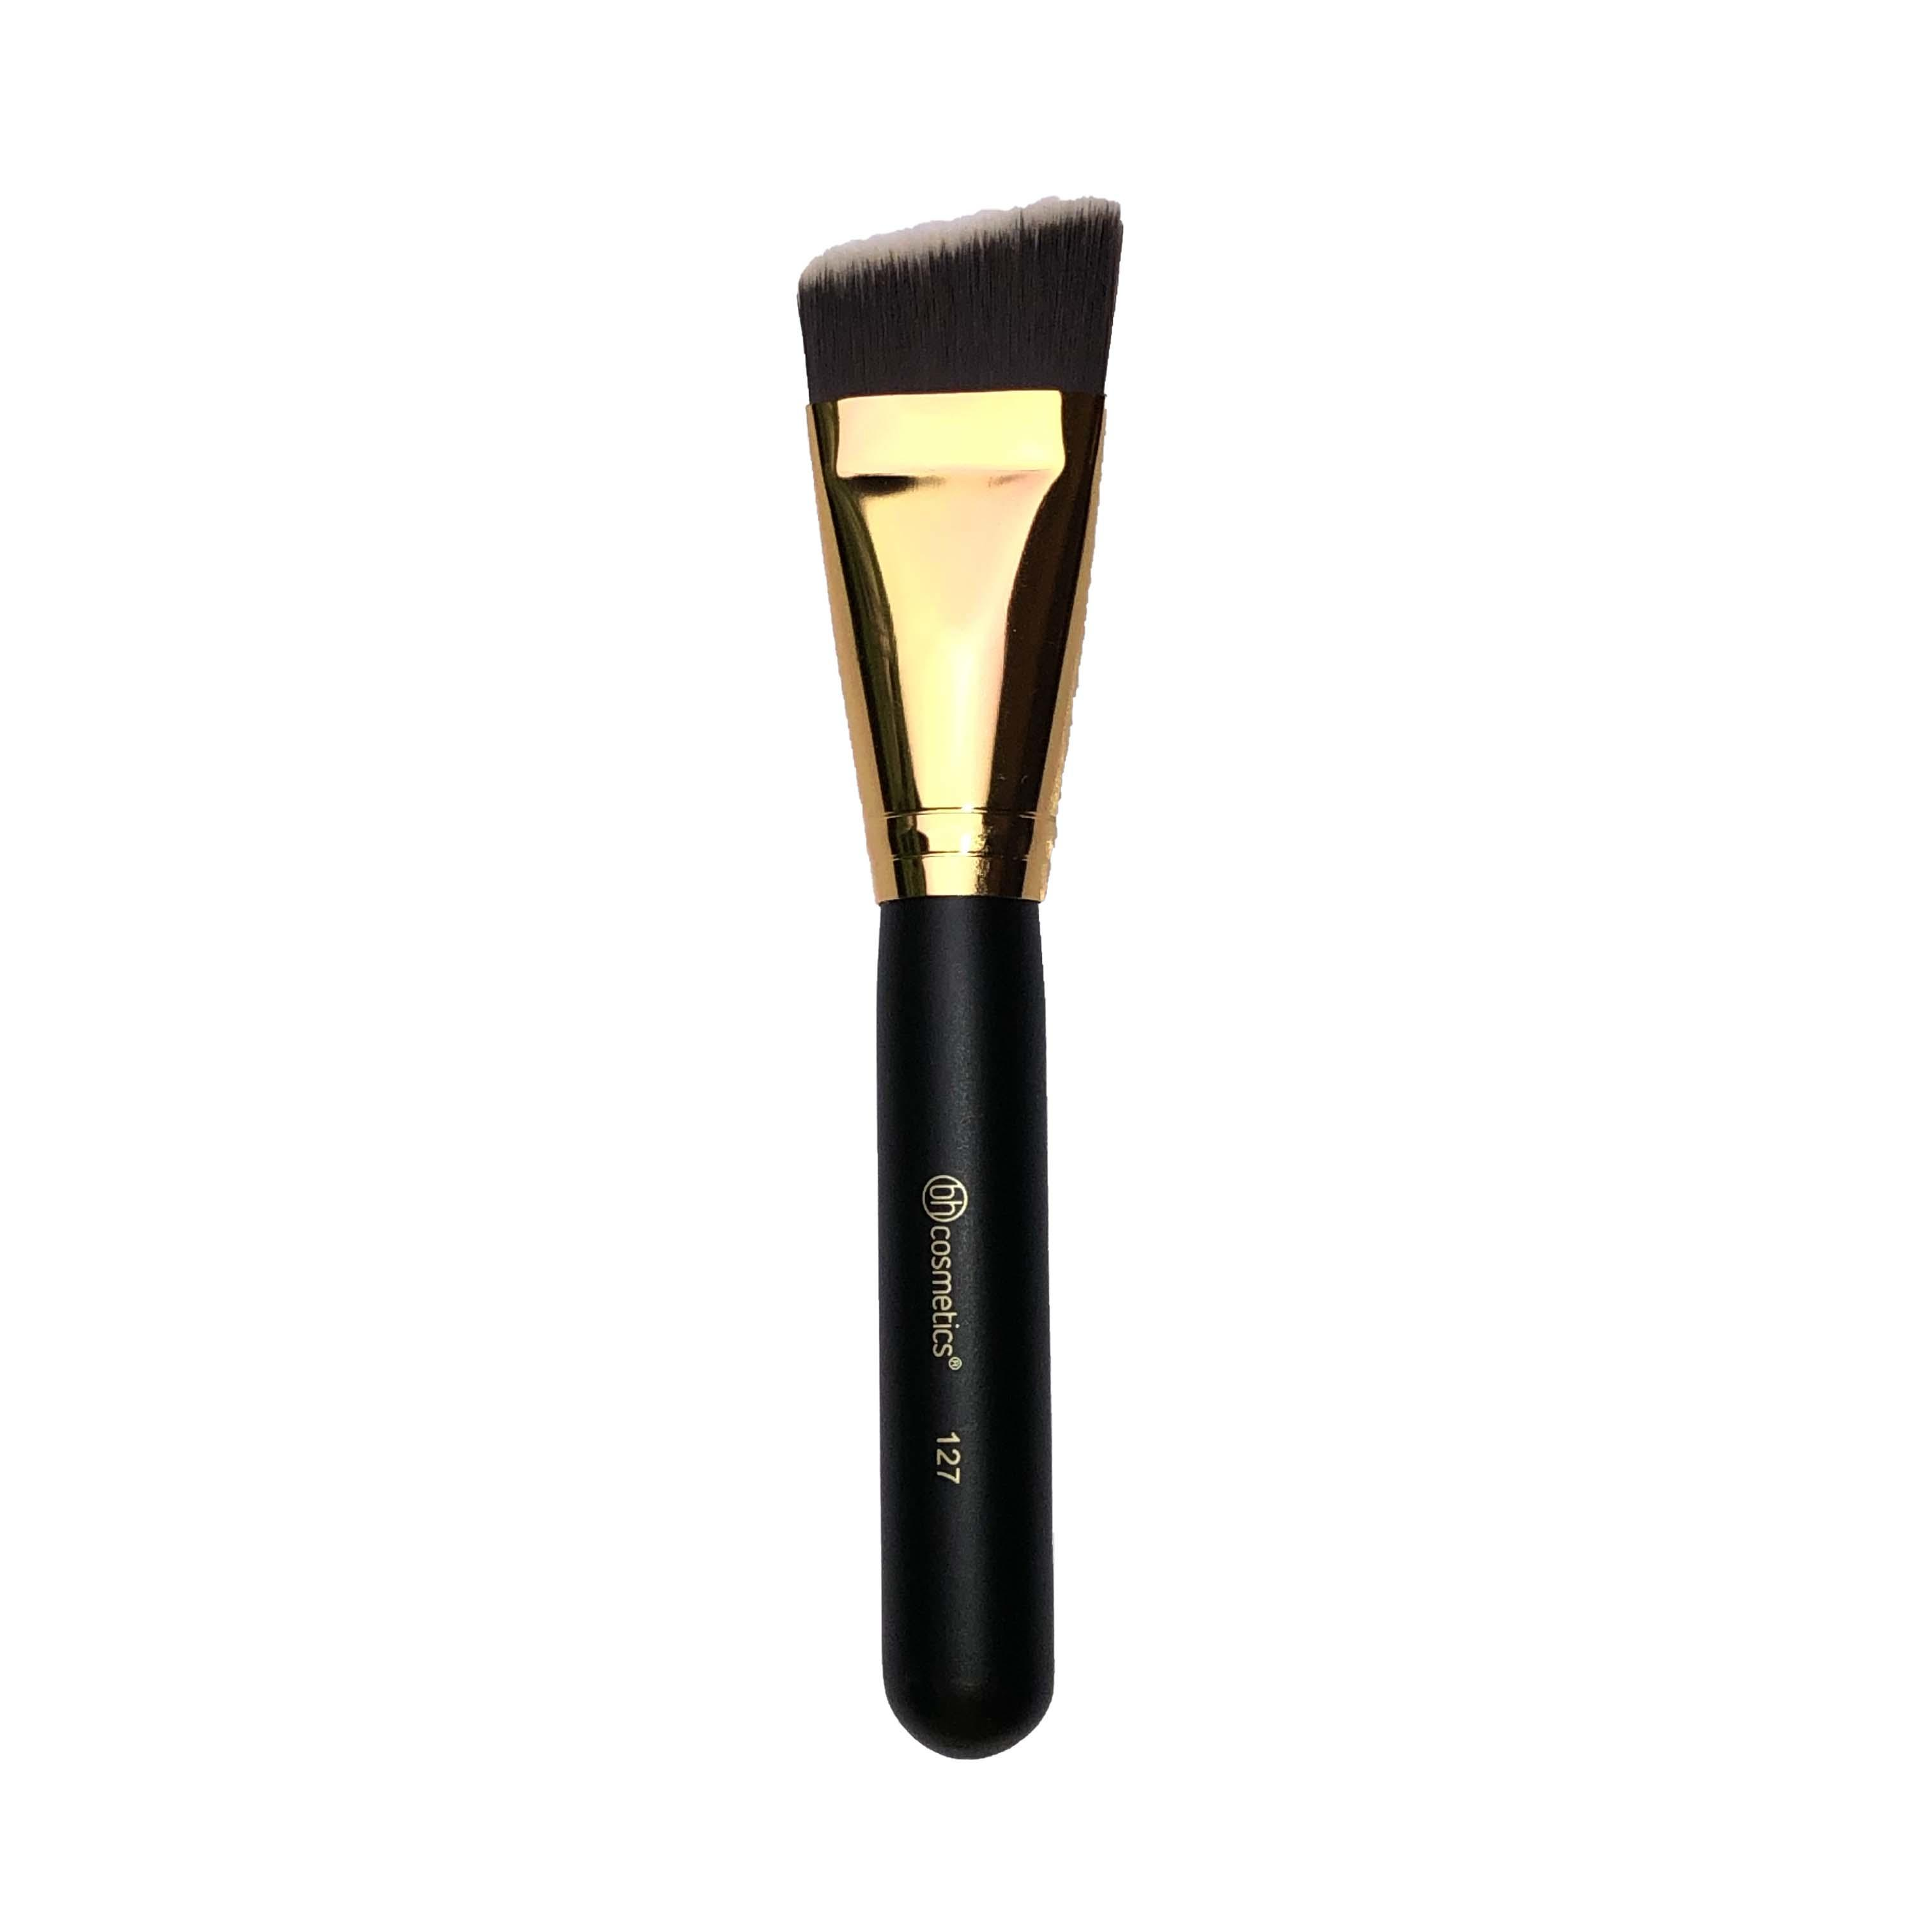 BH Cosmetics Large Chisel Perfection Face Brush 127